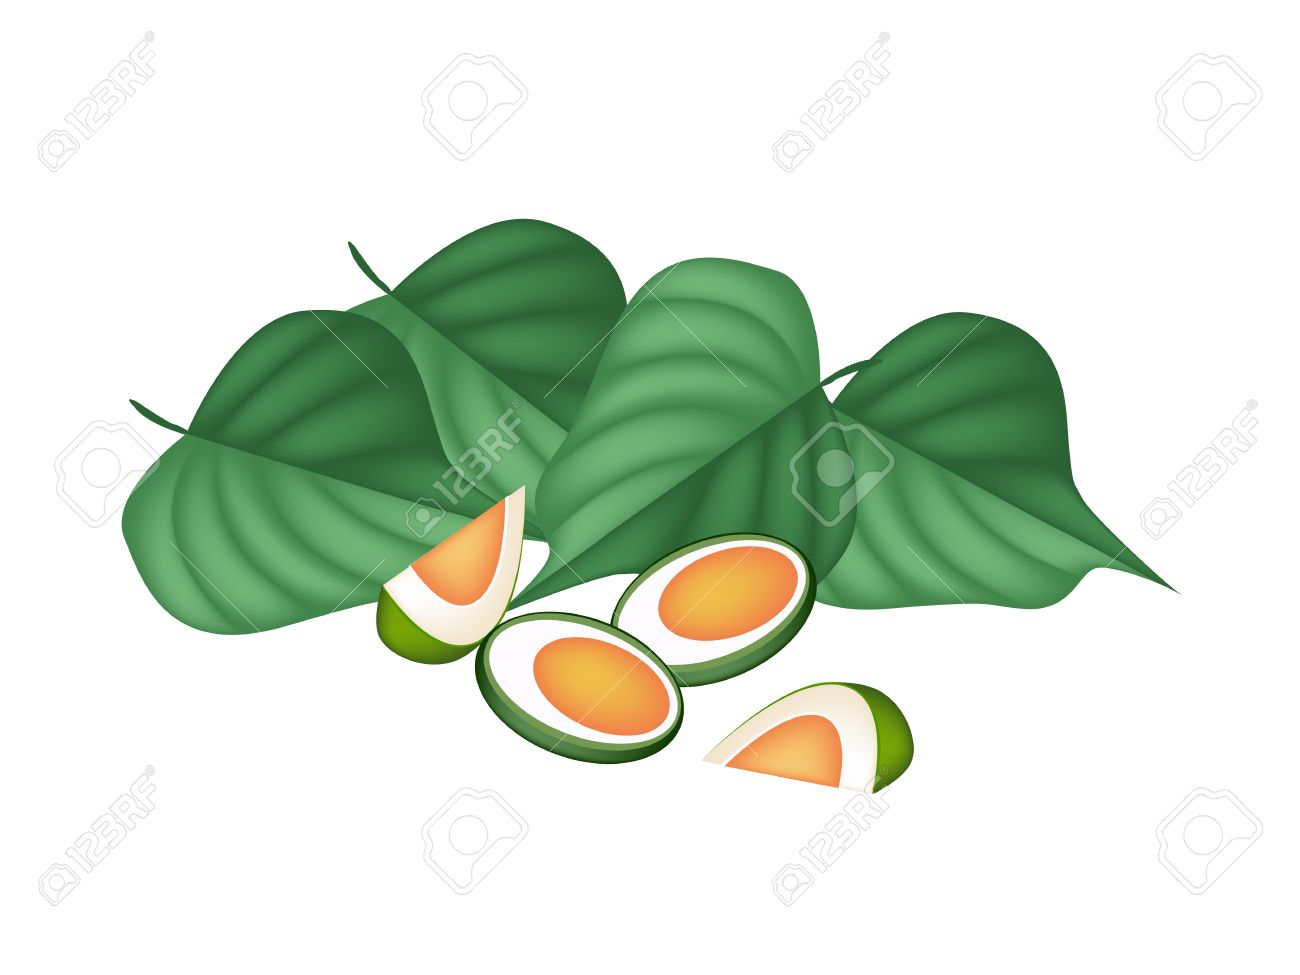 An Illustration Of Half Areca Nut And Betel Leaves, Asian.